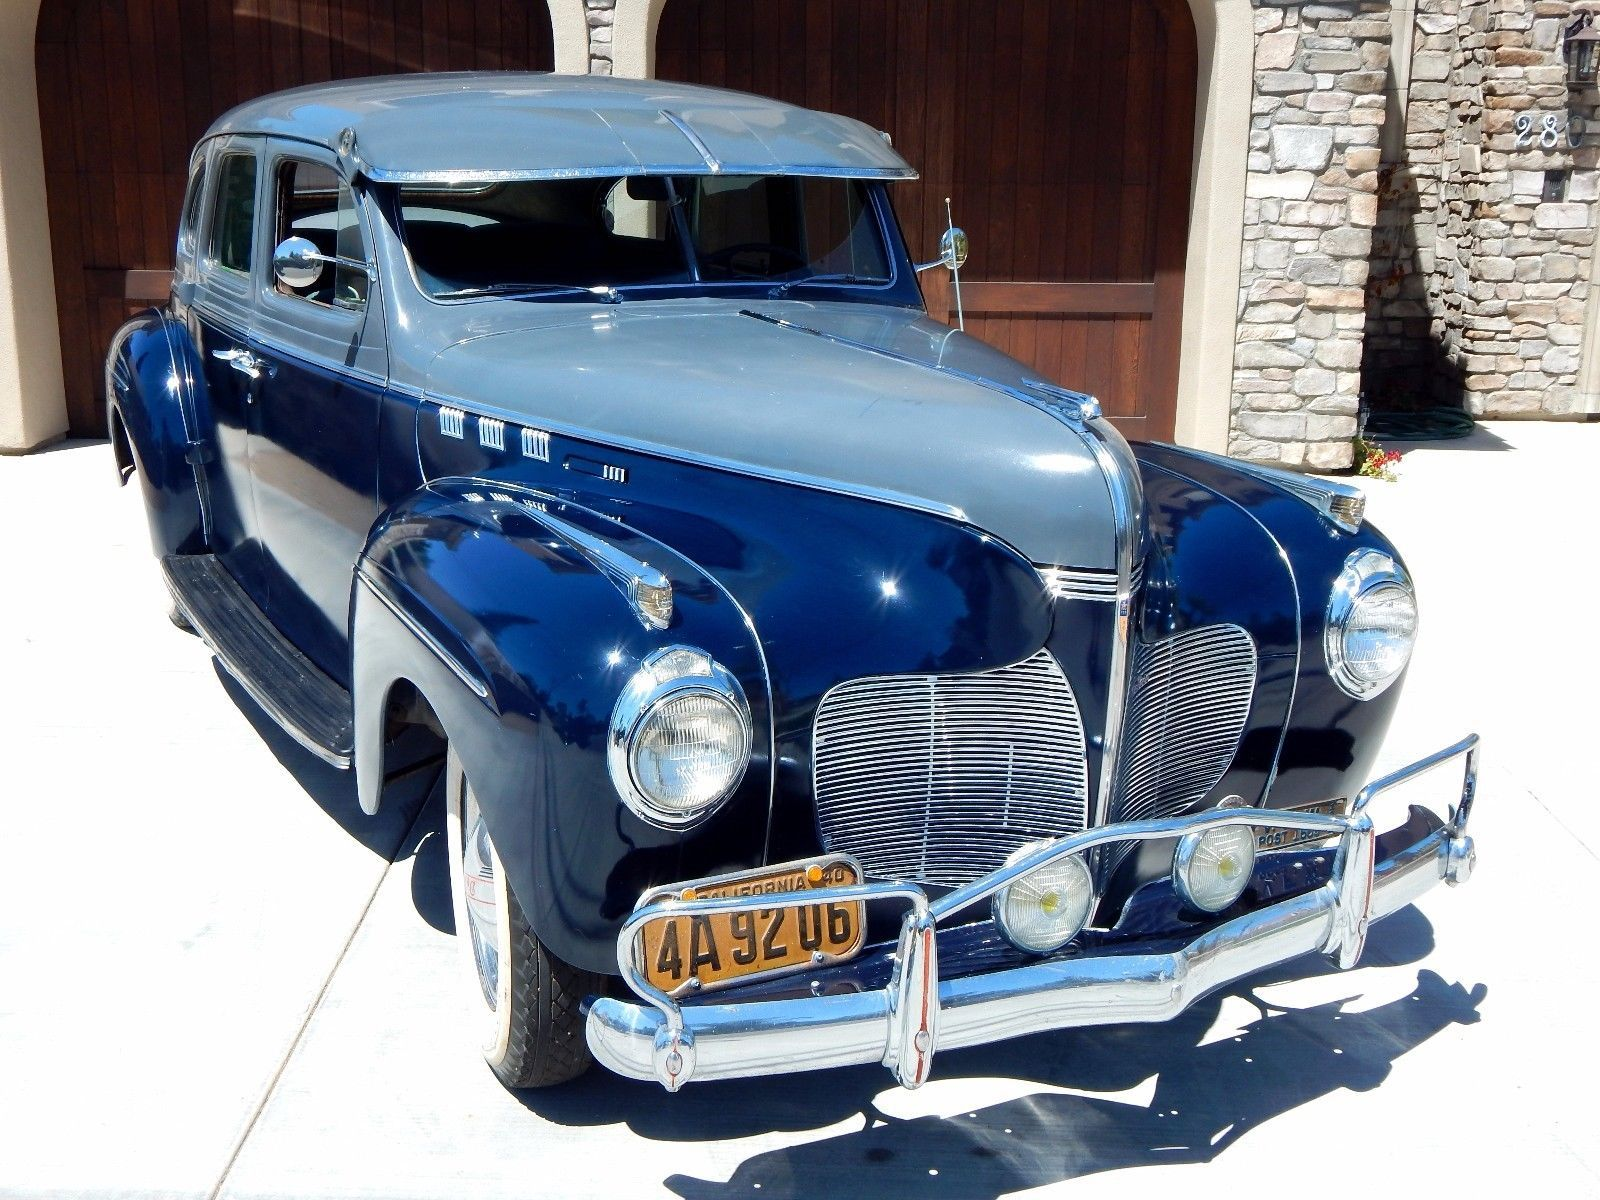 1940 desoto sportsman pre war mid year sedan desoto pinterest rh pinterest com 1938 La Salle Sedan 1938 La Salle Sedan